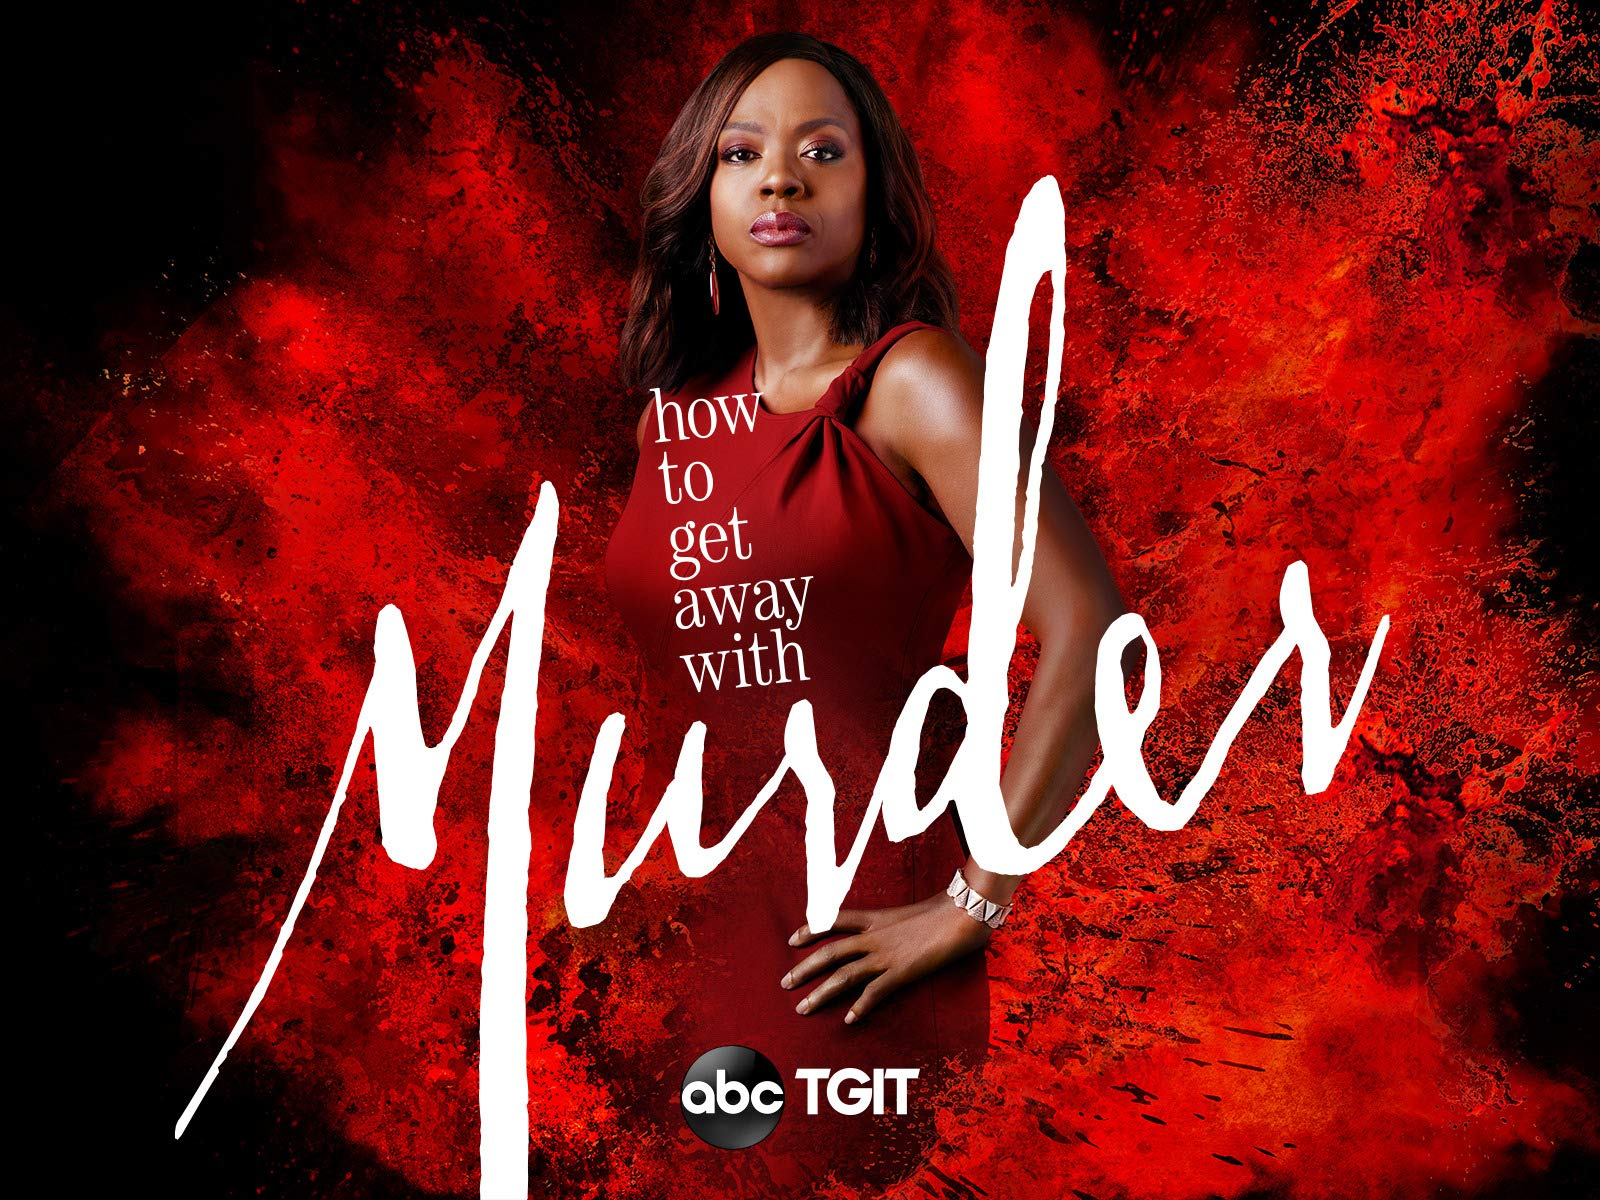 How to Get Away With a Murder Season 7 Poster